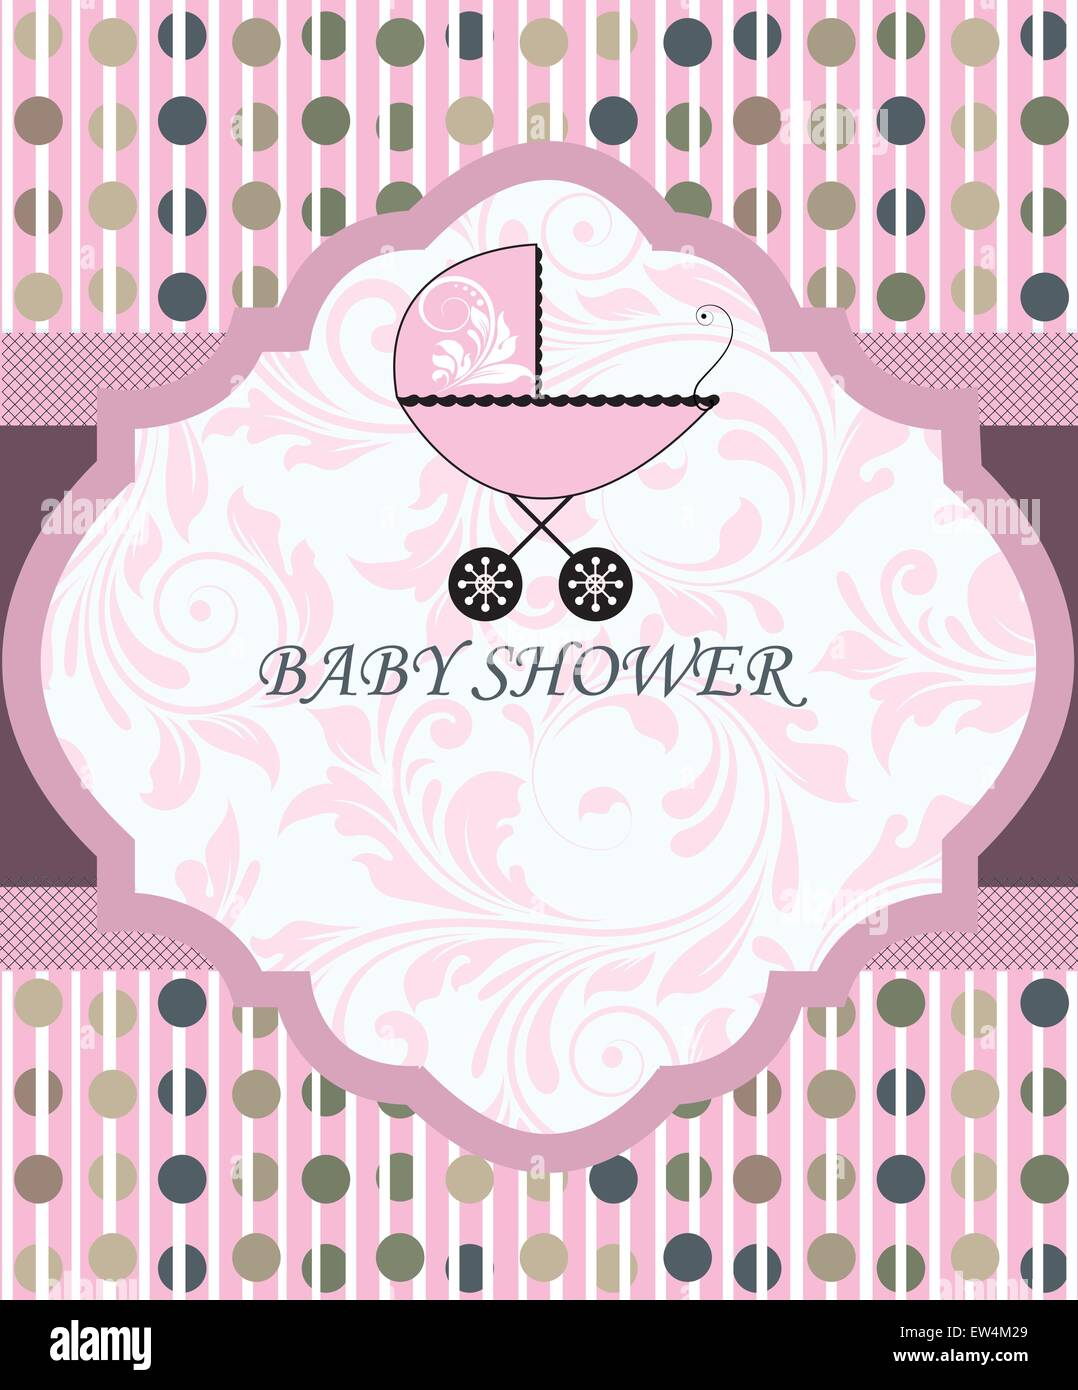 Vintage Baby Shower Invitation Card With Ornate Elegant Retro Stock